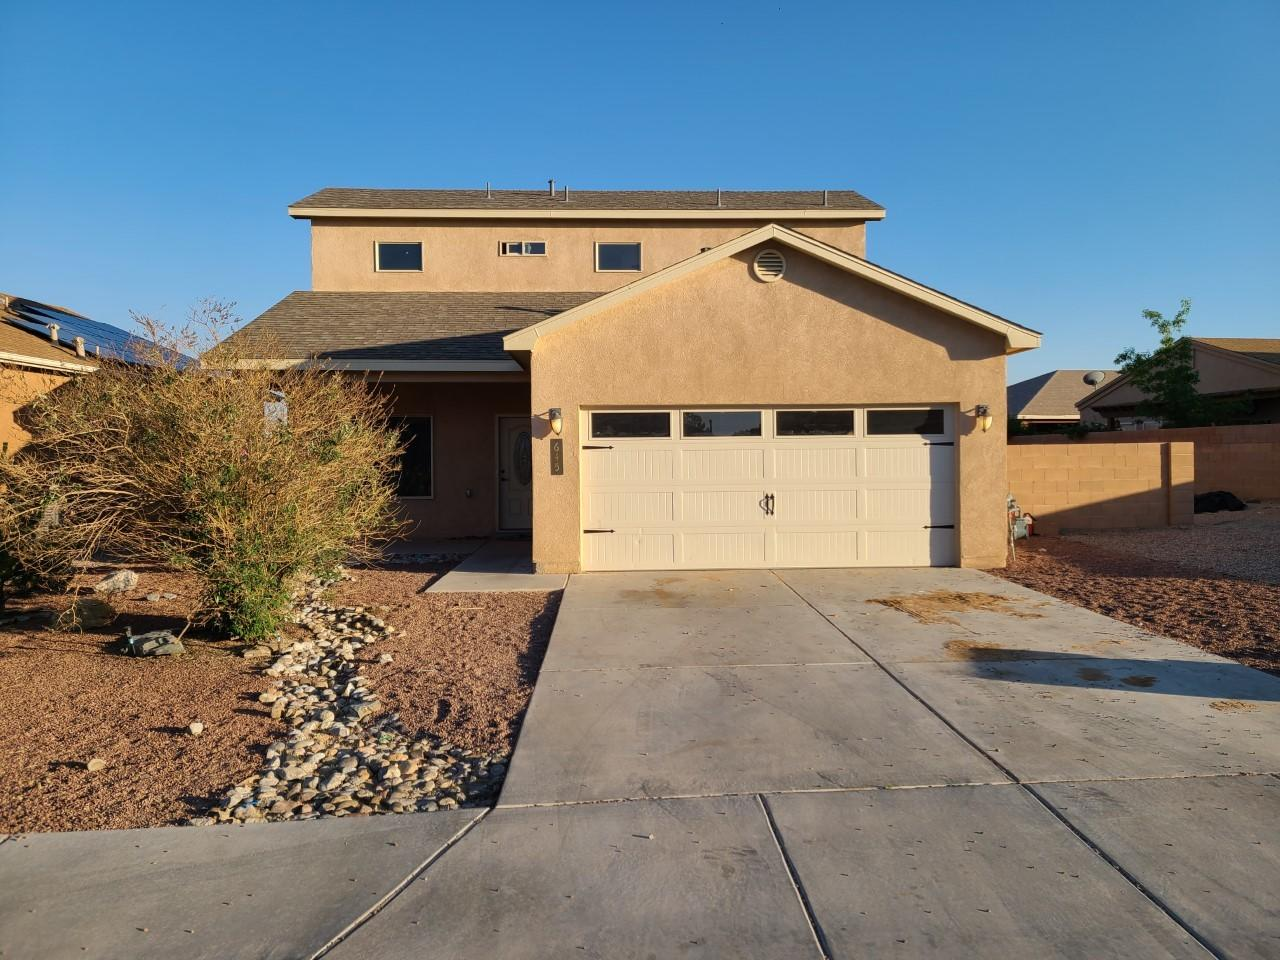 Extra Parking, Large Yard, Near access to highway, stores and restaurants.